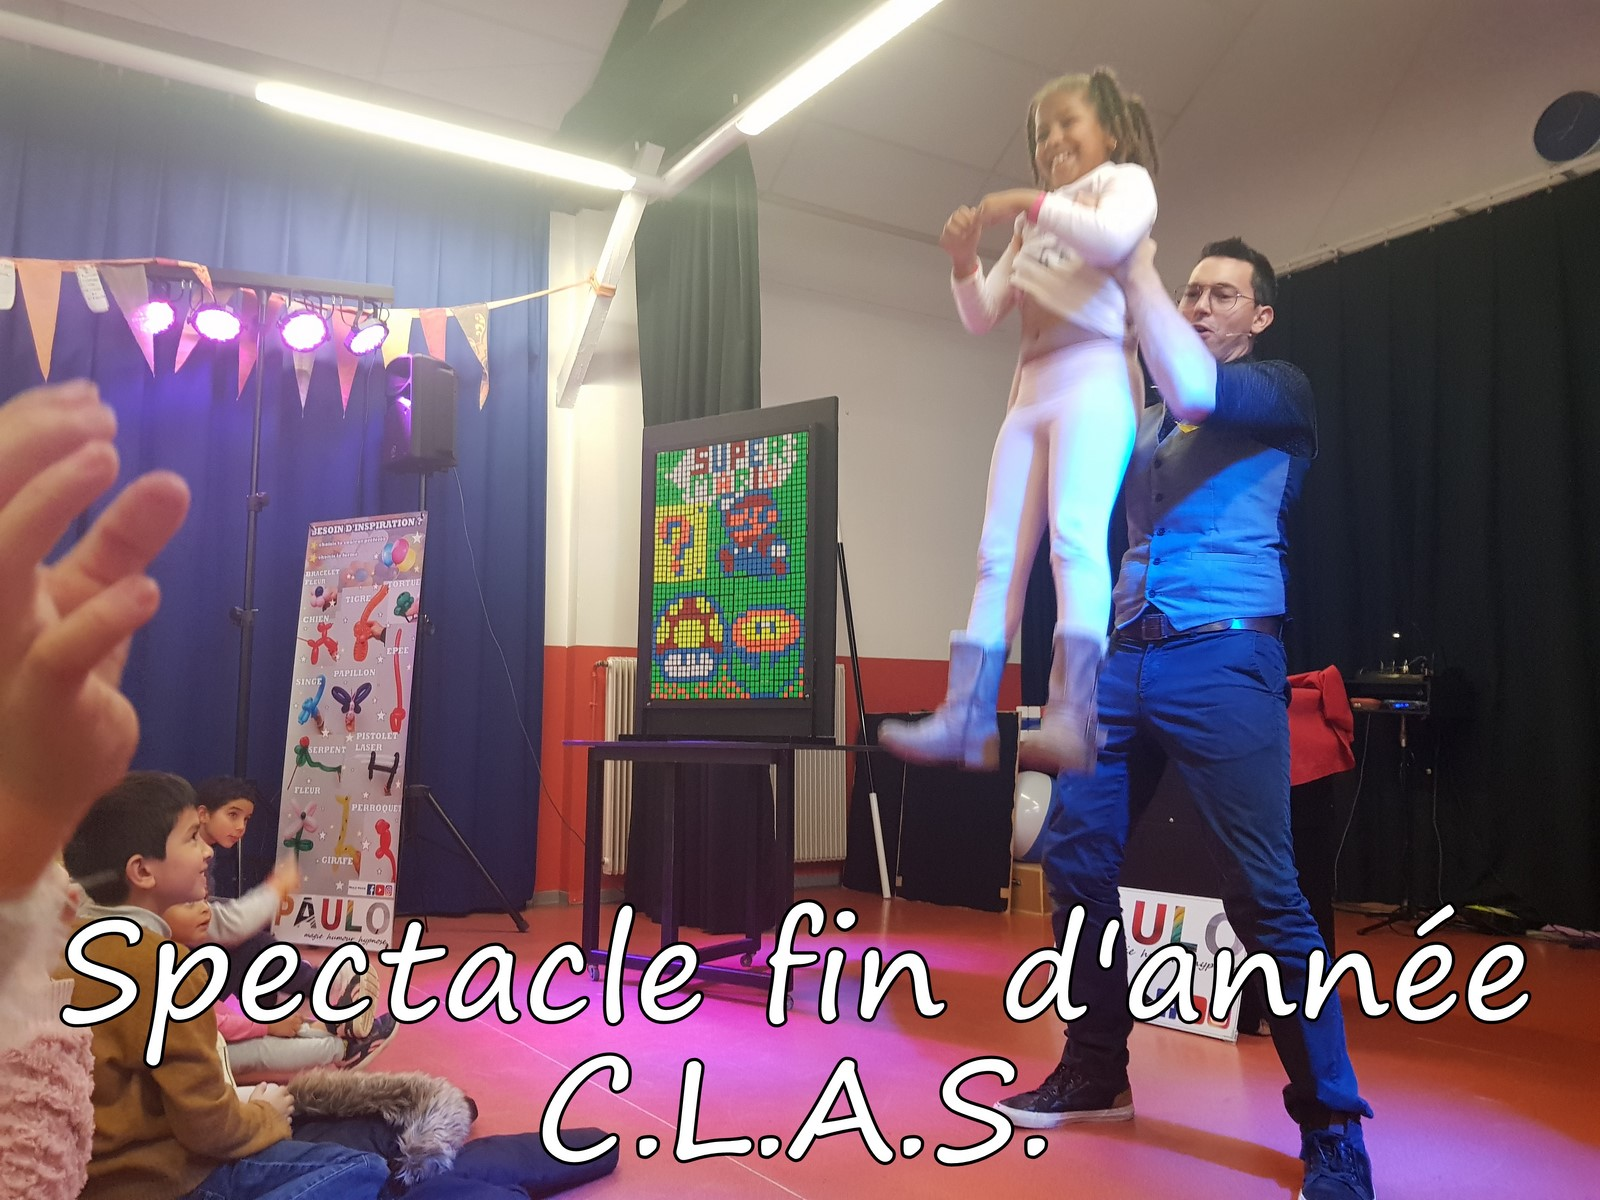 Spectacle-fin-dannee-CLAS